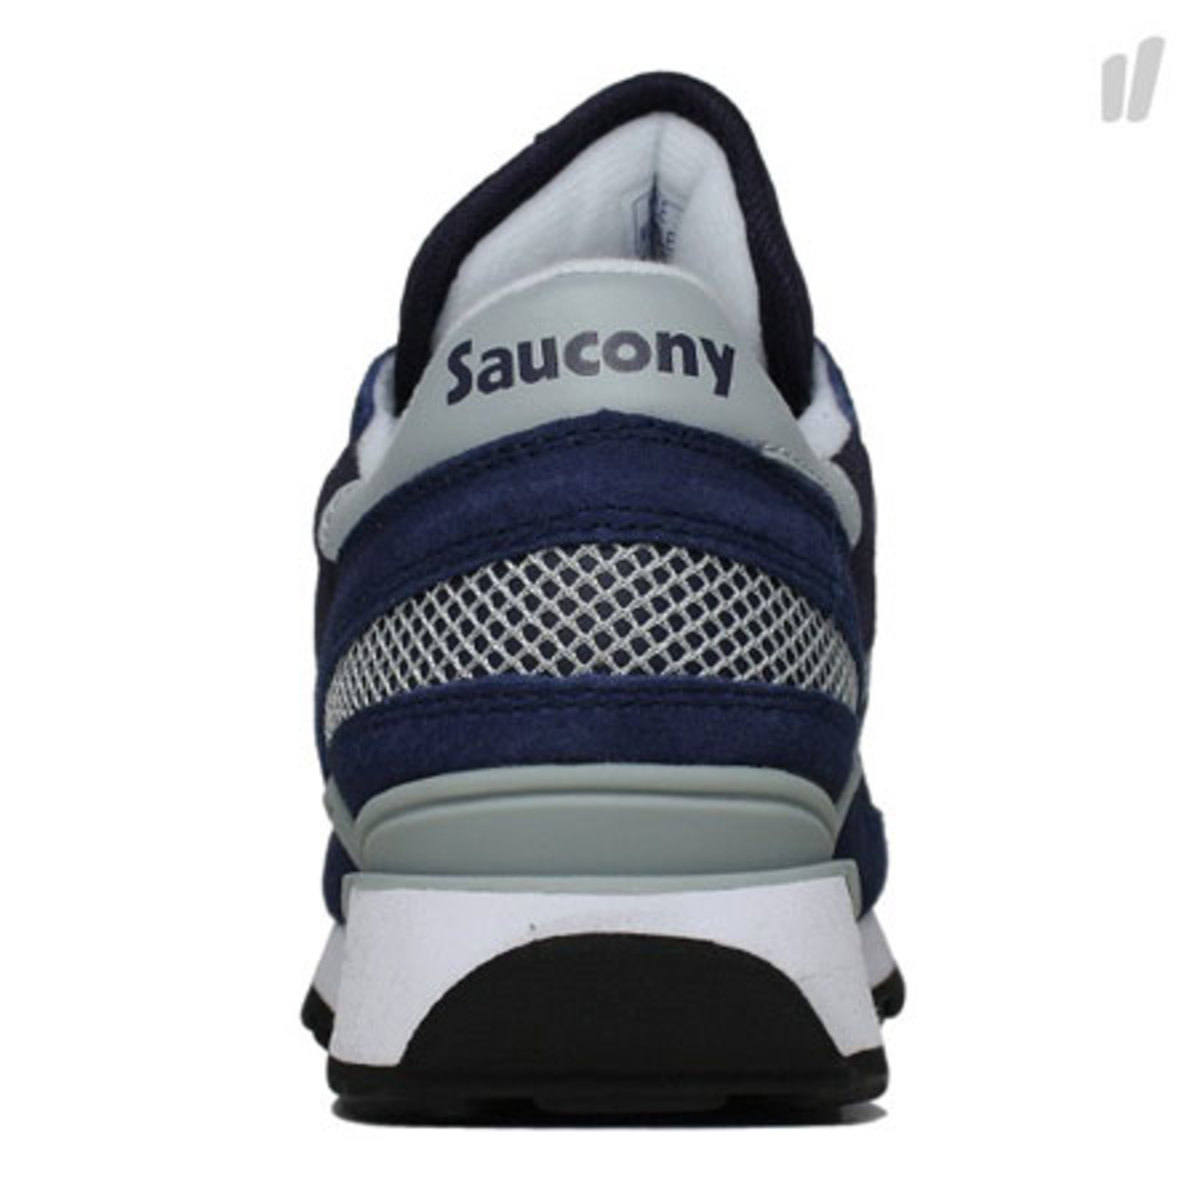 saucony-spring-2013-collection-17